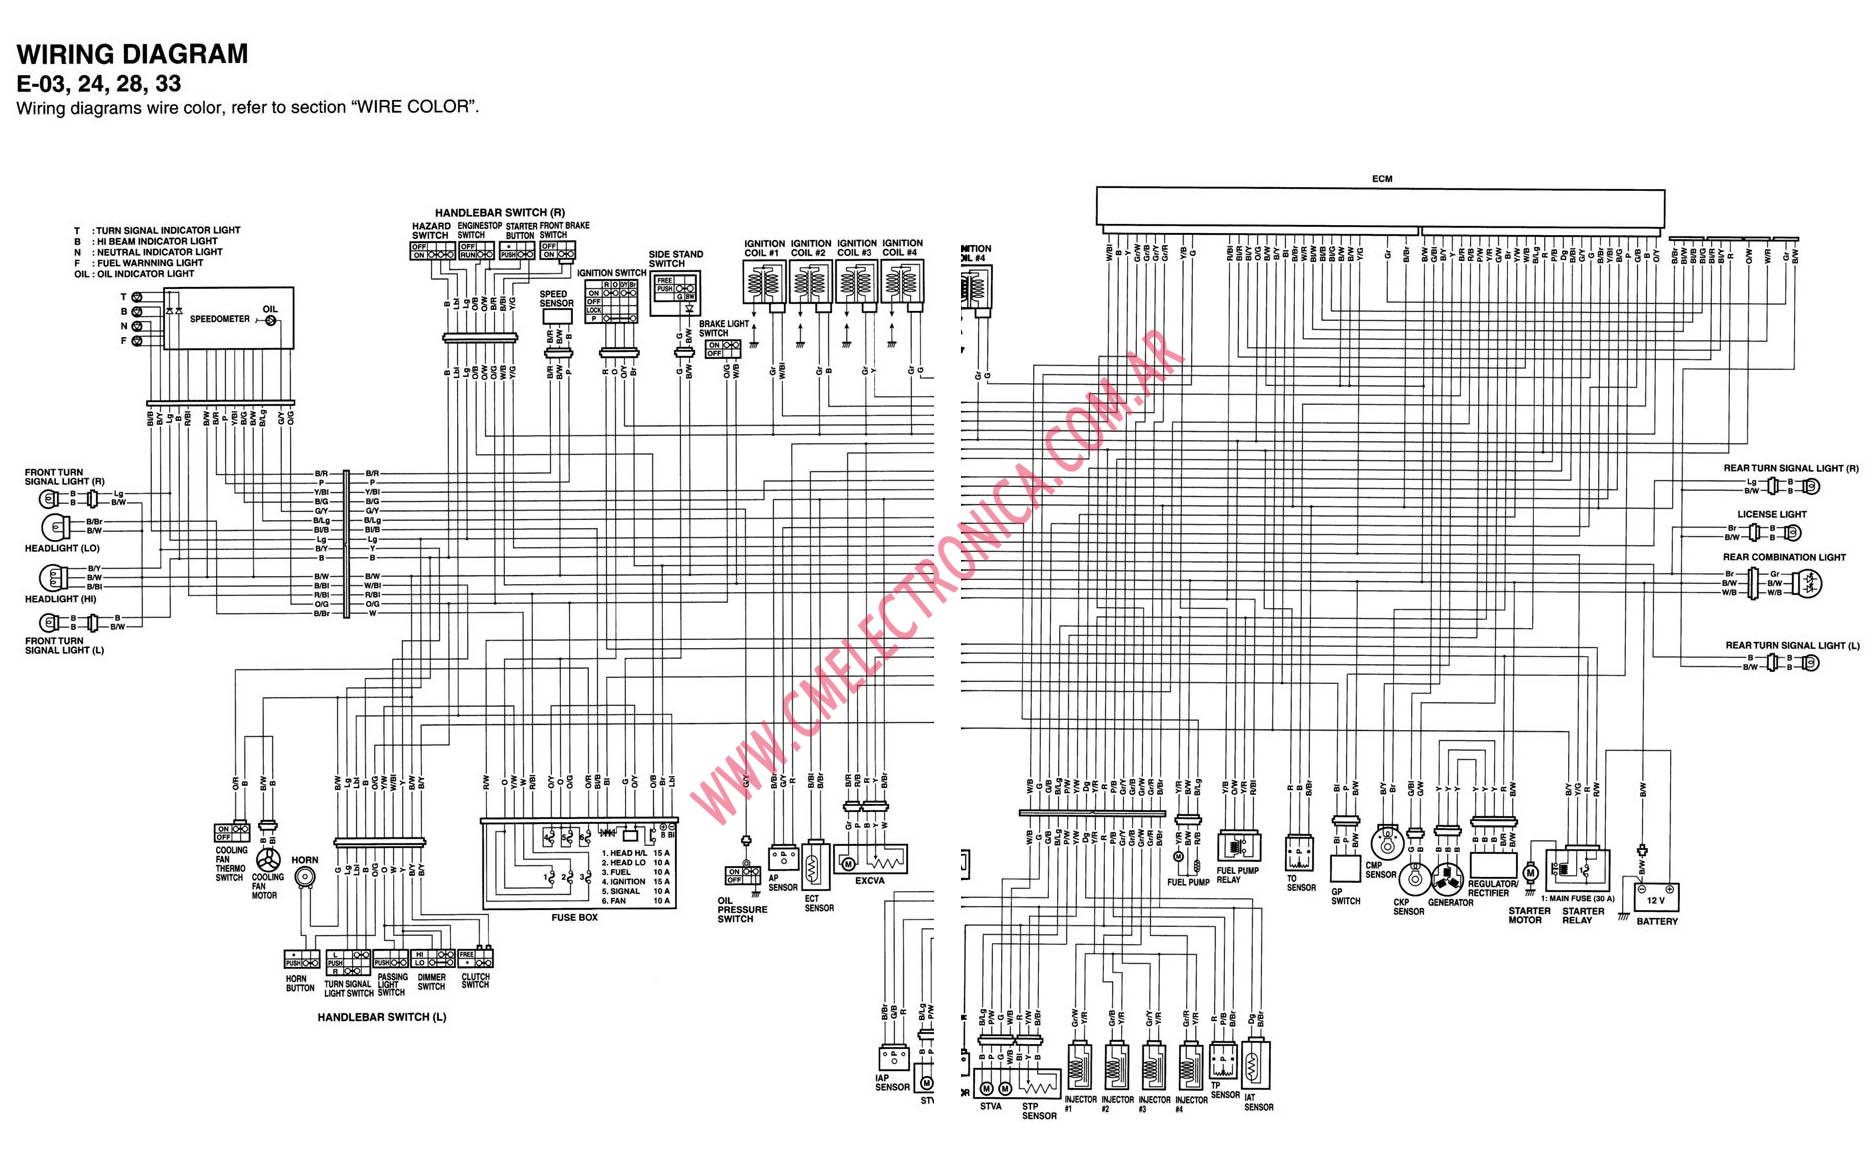 hight resolution of 2007 gsxr 1000 wiring diagram ignition wiring diagrams 2007 gsxr 600 wiring diagram 2007 gsxr wiring diagram source suzuki gsx 750